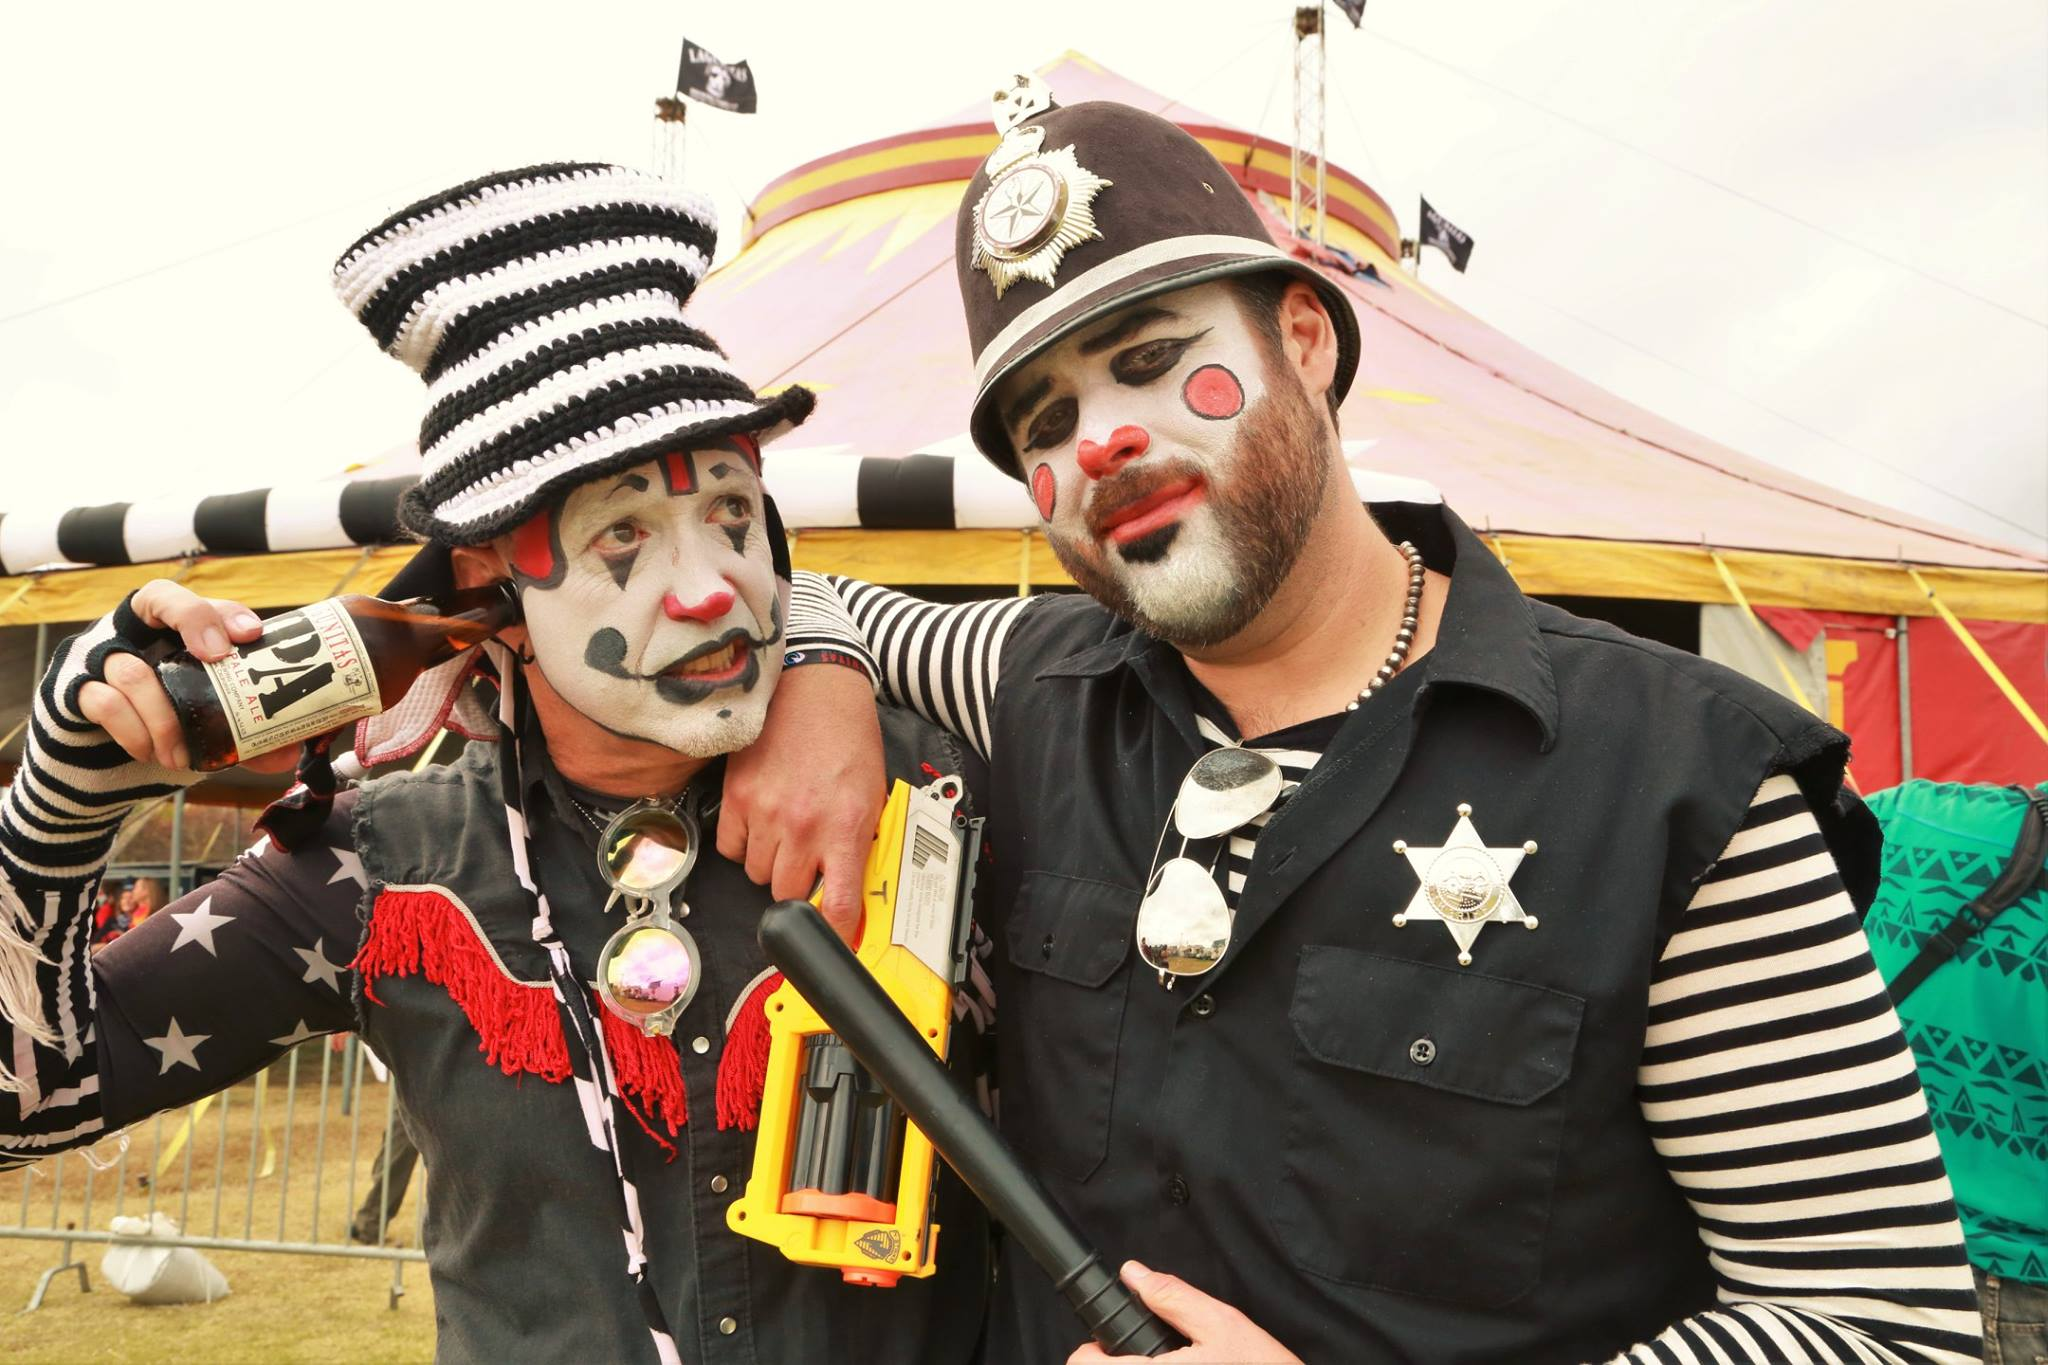 The Klown at Lagunitas Beer Circus with Charley Copper of The Kops